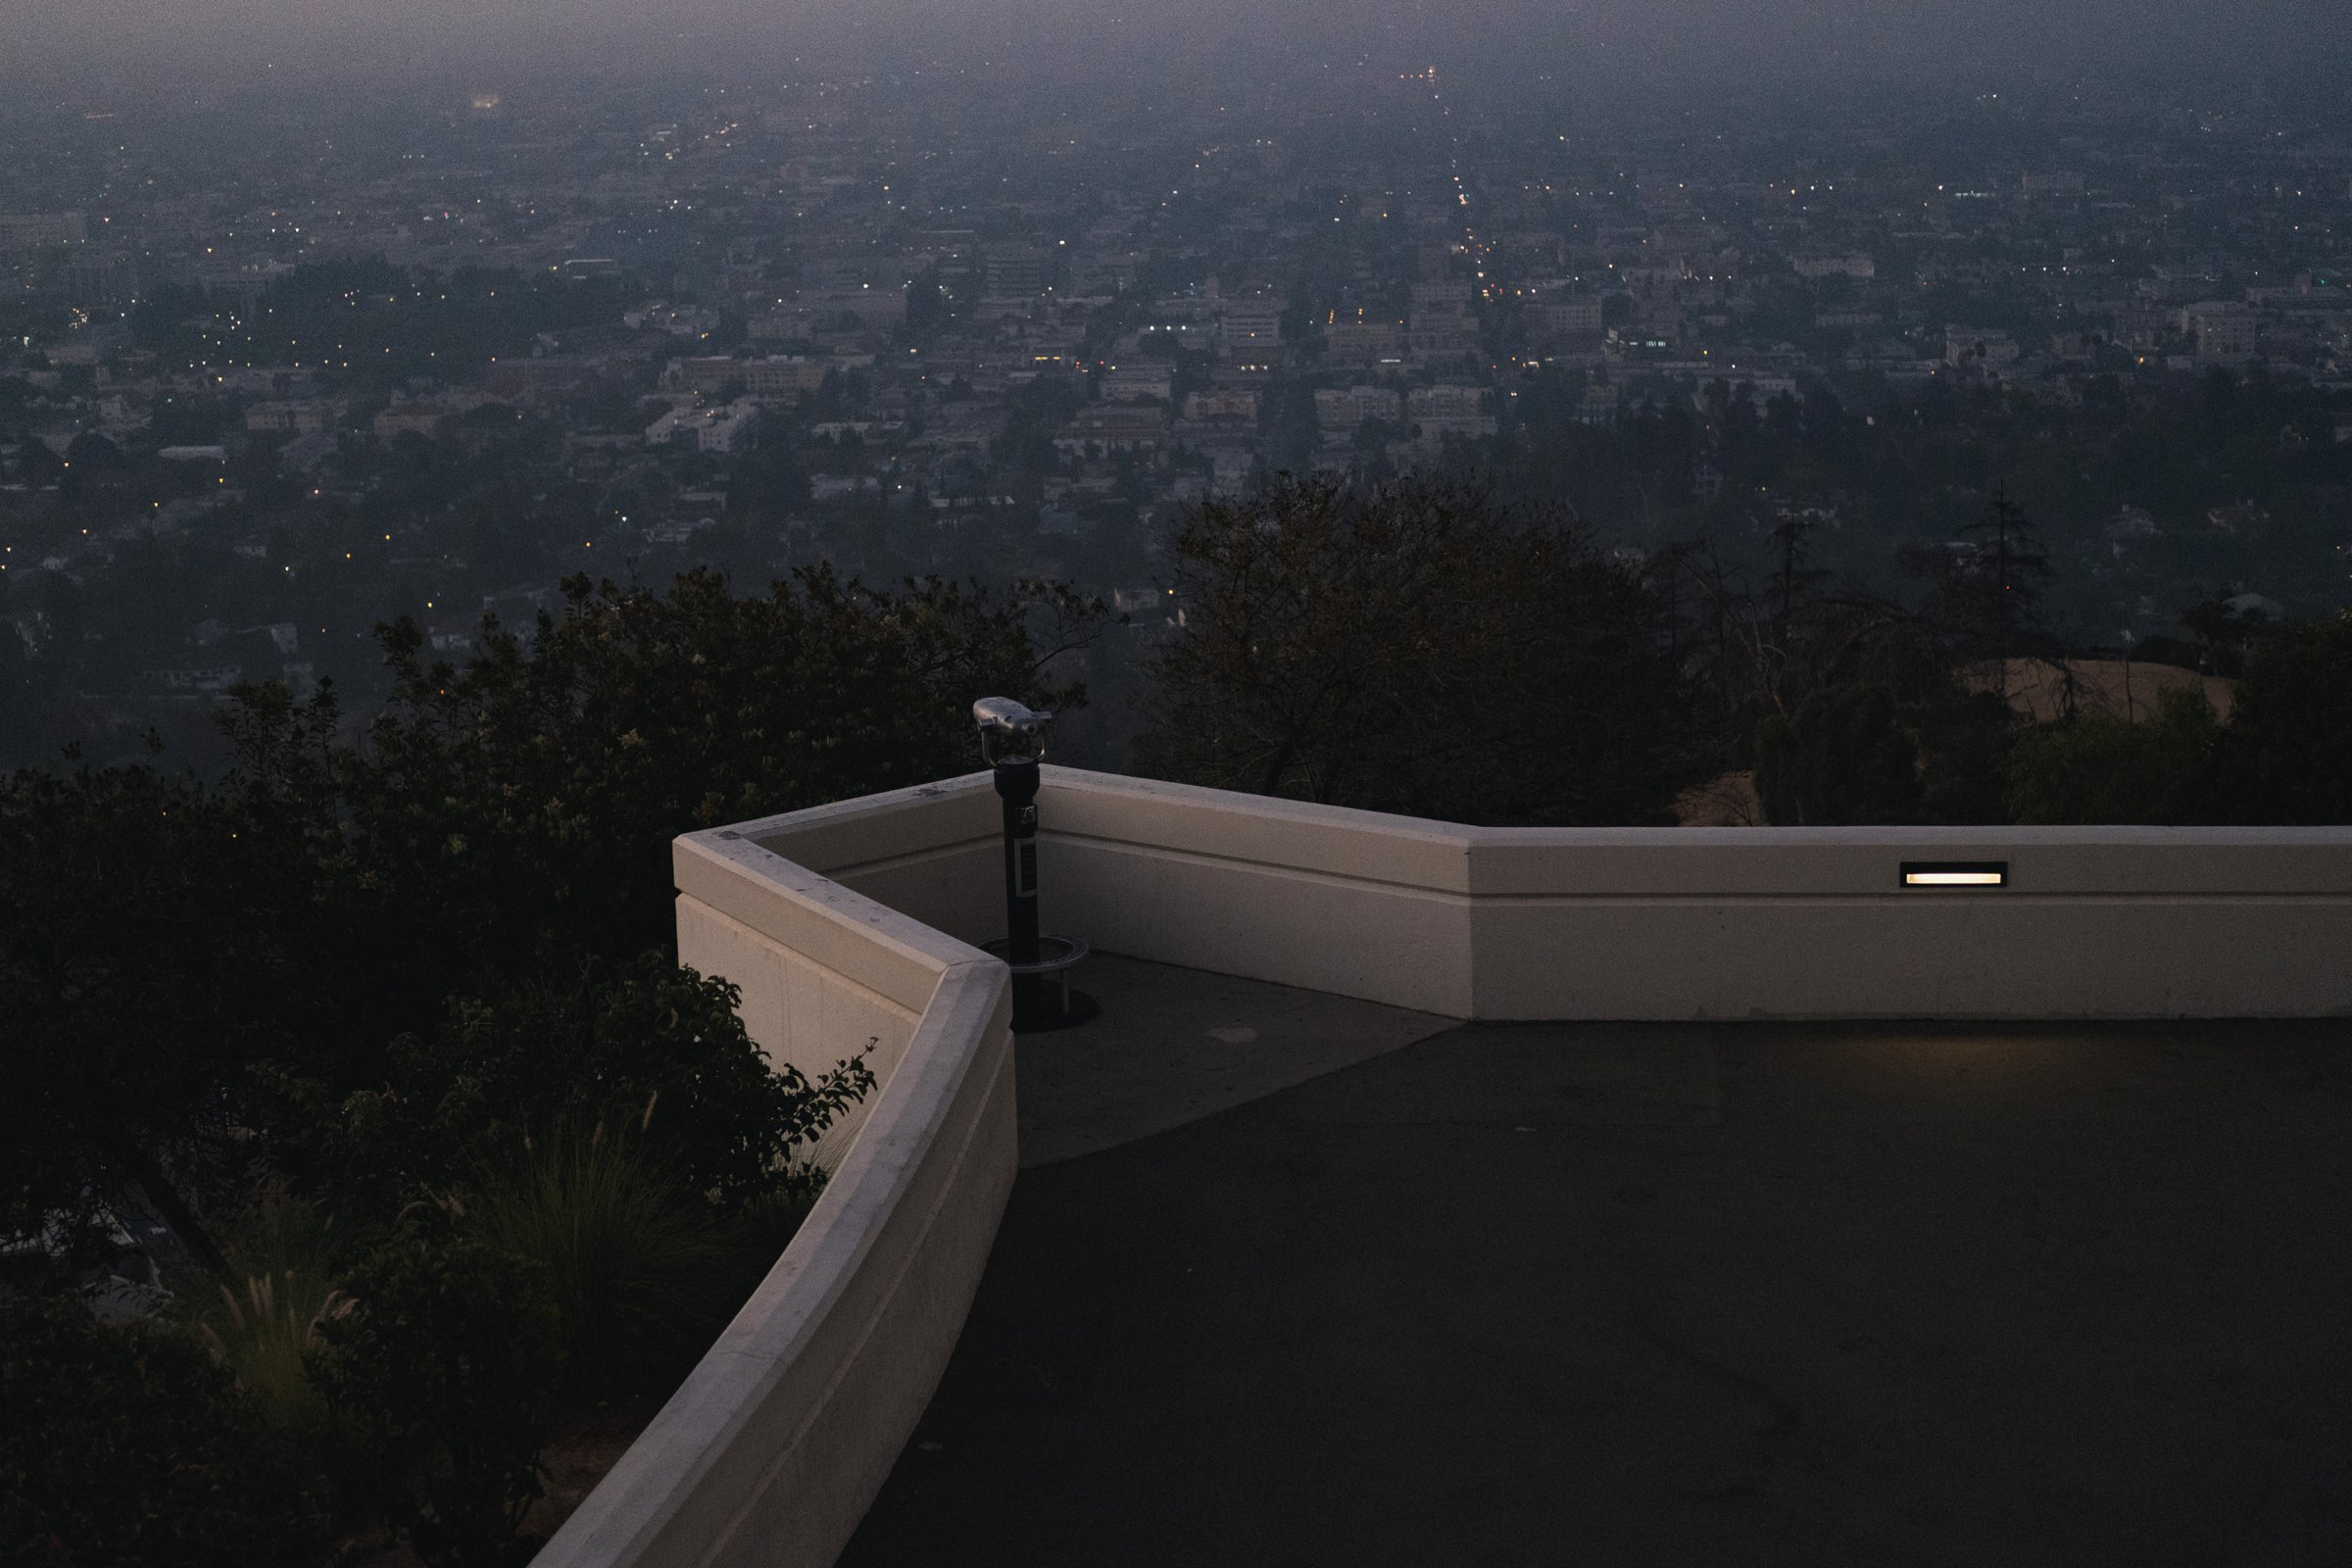 Several observation points give a glimpse of the vastness that is Los Angeles